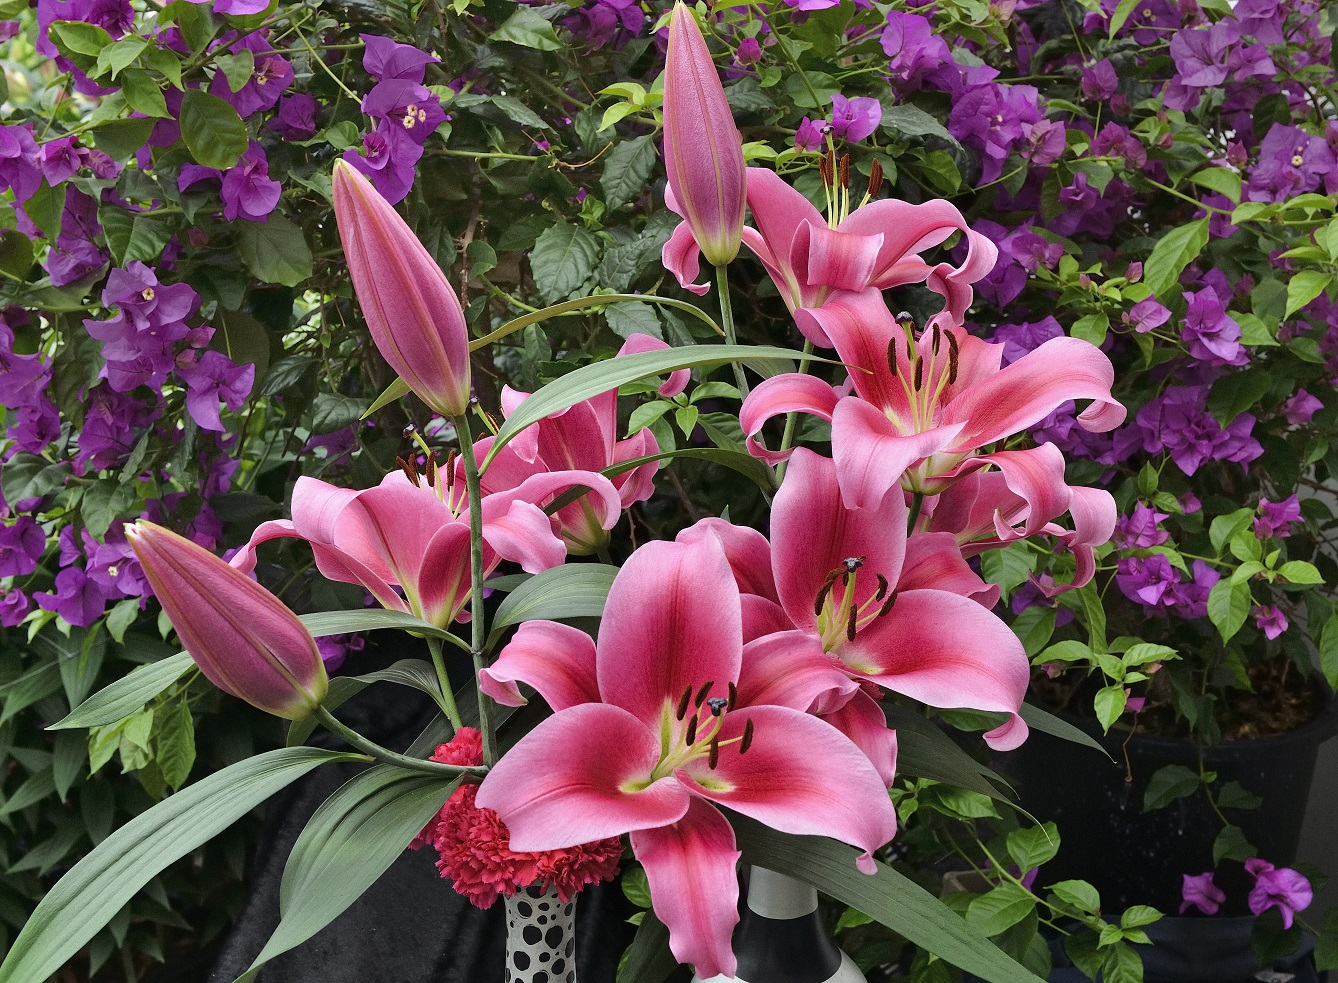 Dalian Oriental Trumpet Lily From The Gold Medal Winning